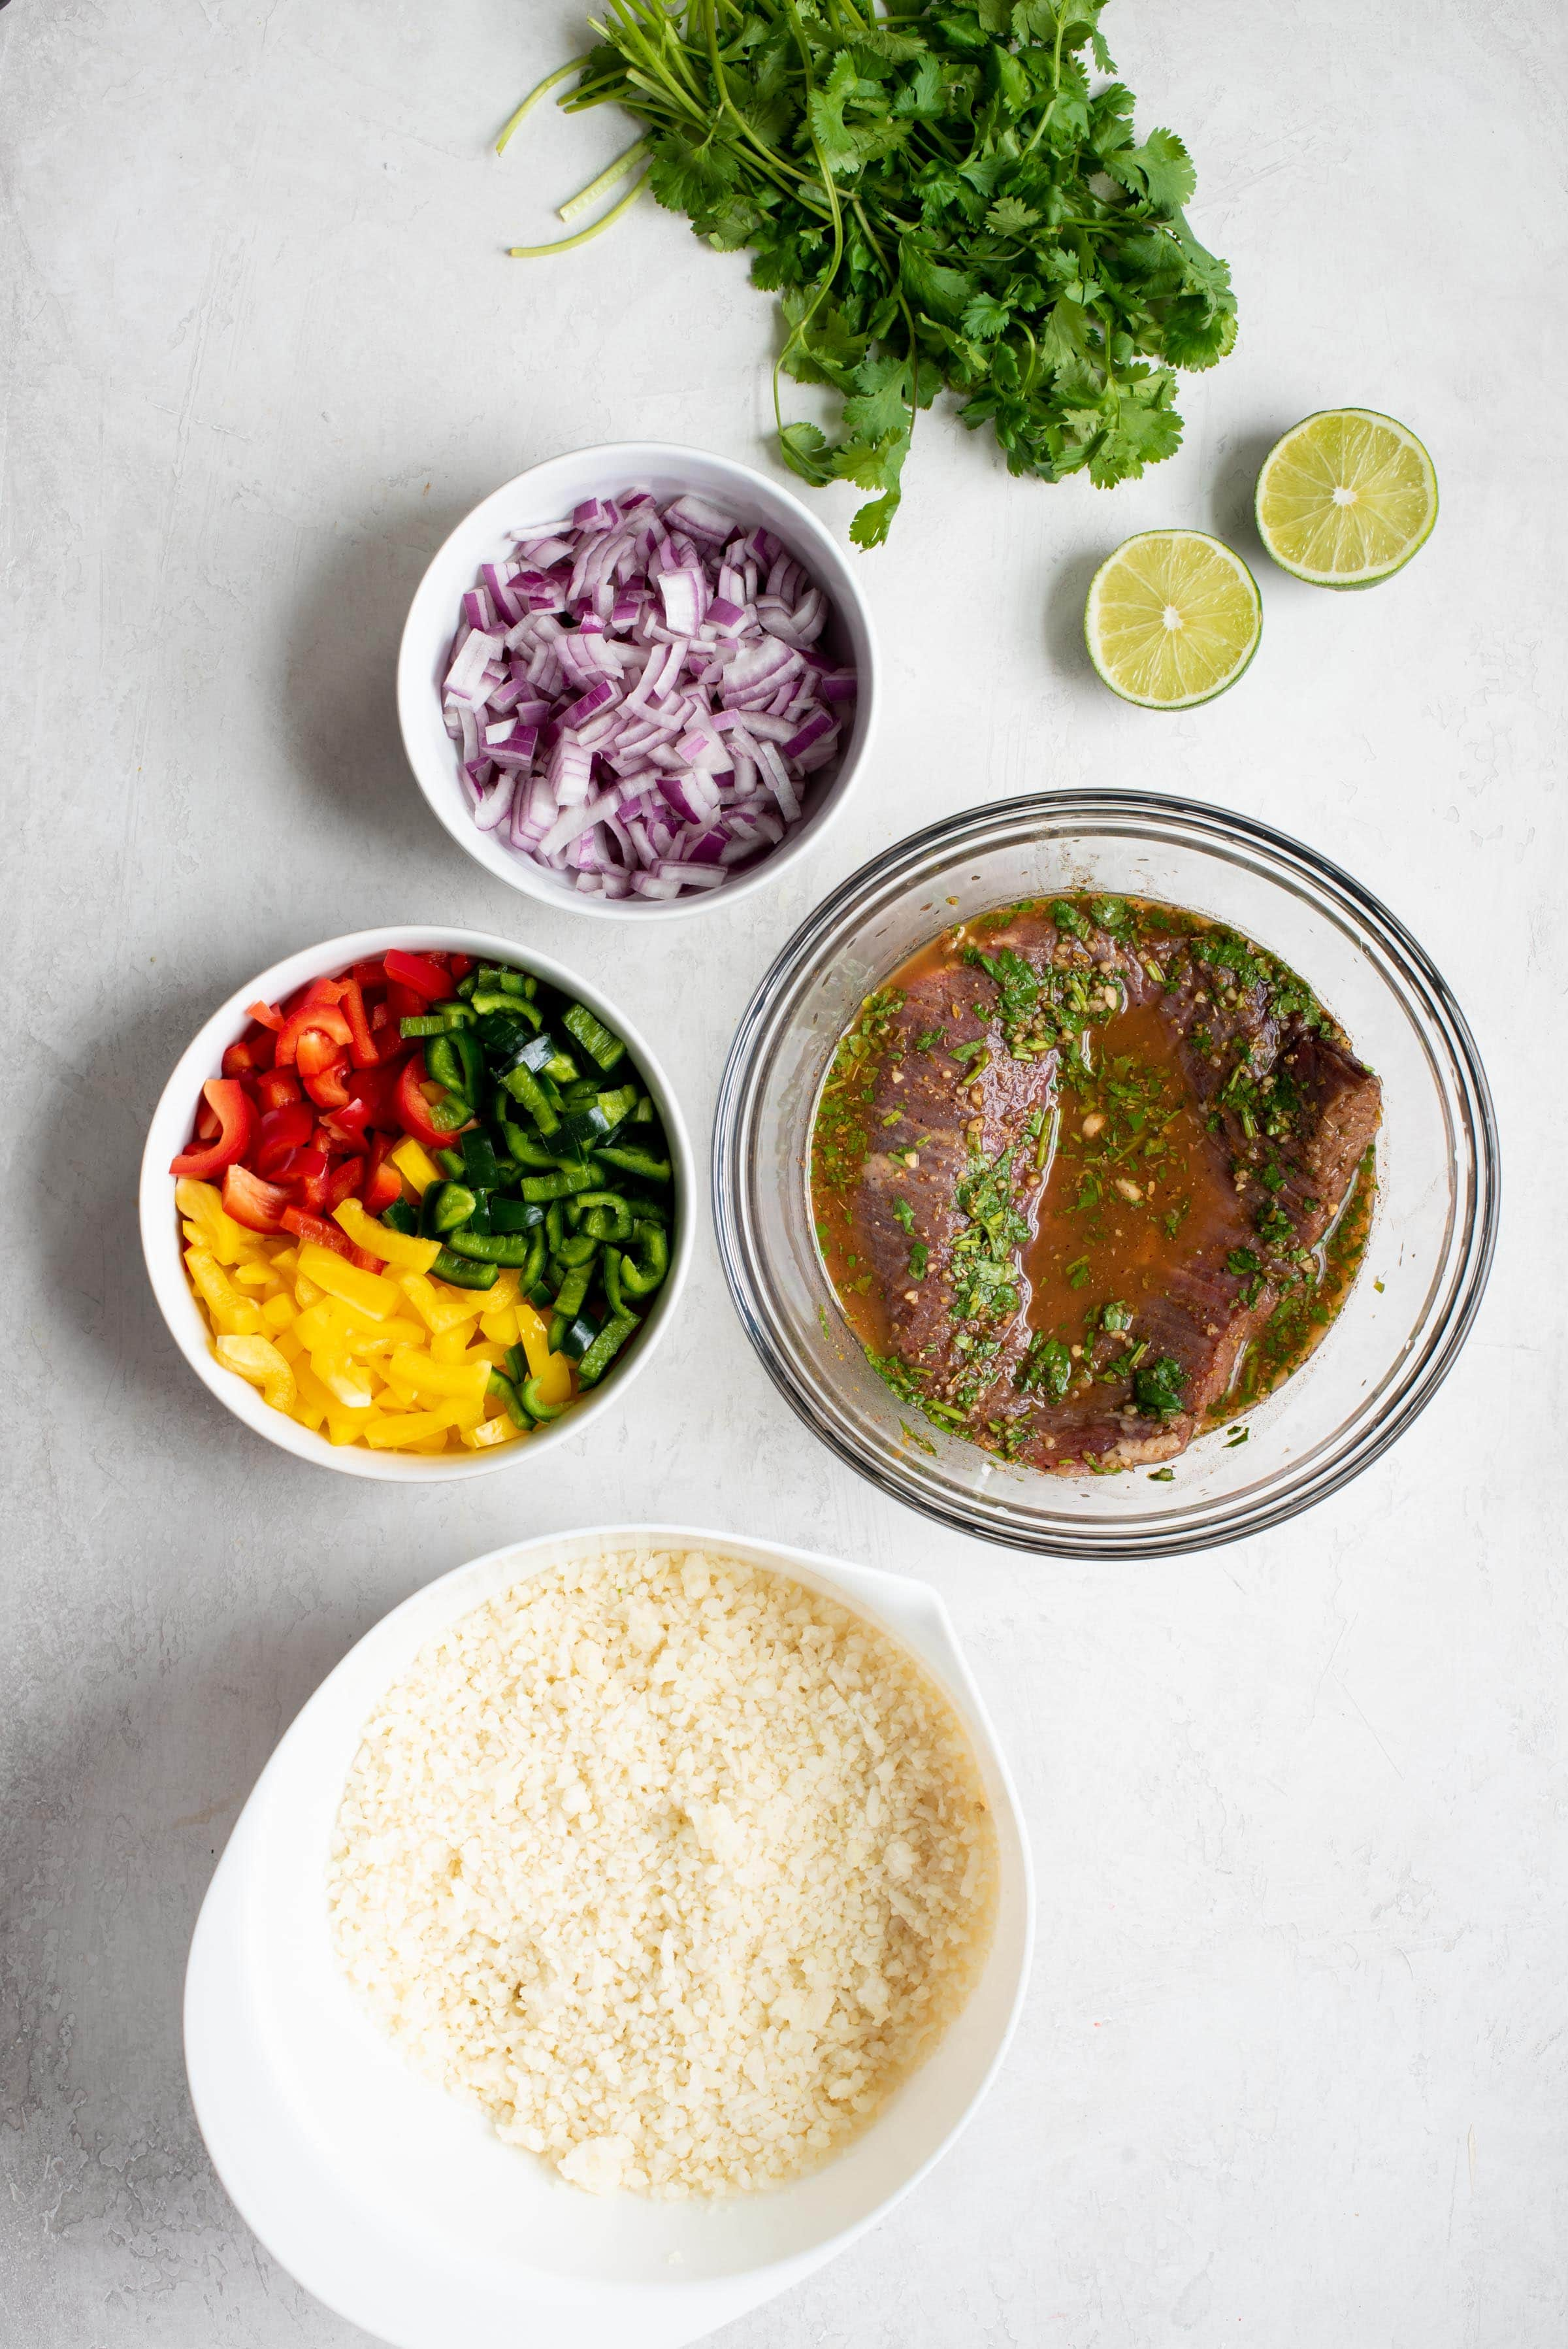 Ingredients for Steak Fajita Bowls with Cilantro-Lime Cauliflower Rice in individual bowls - marinating steak, peppers, onions, lime, cilantro, cauliflower rice